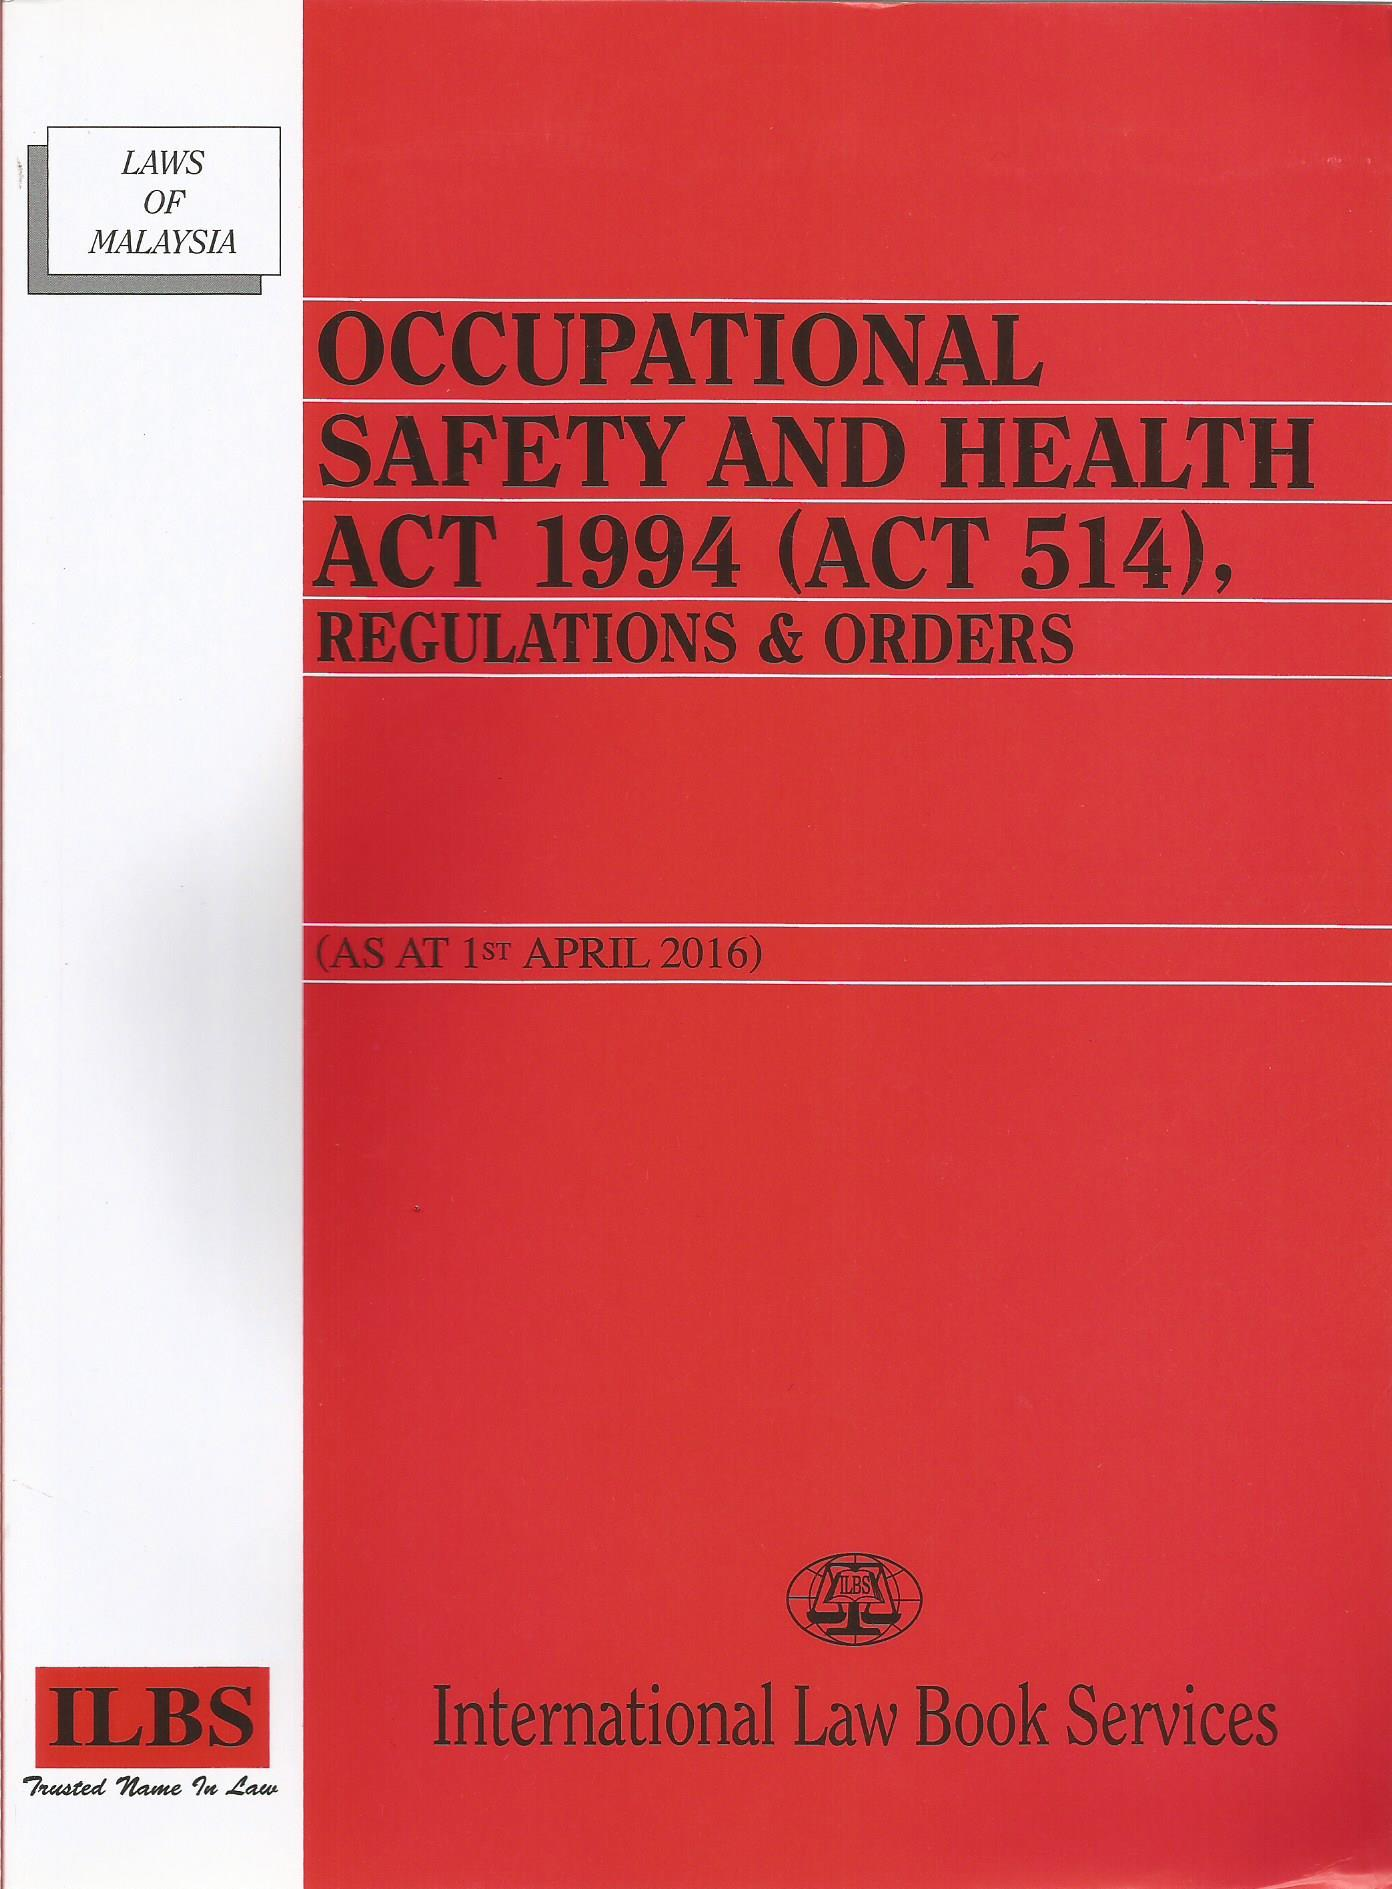 occupational health and safety rm25 0.40001.jpg